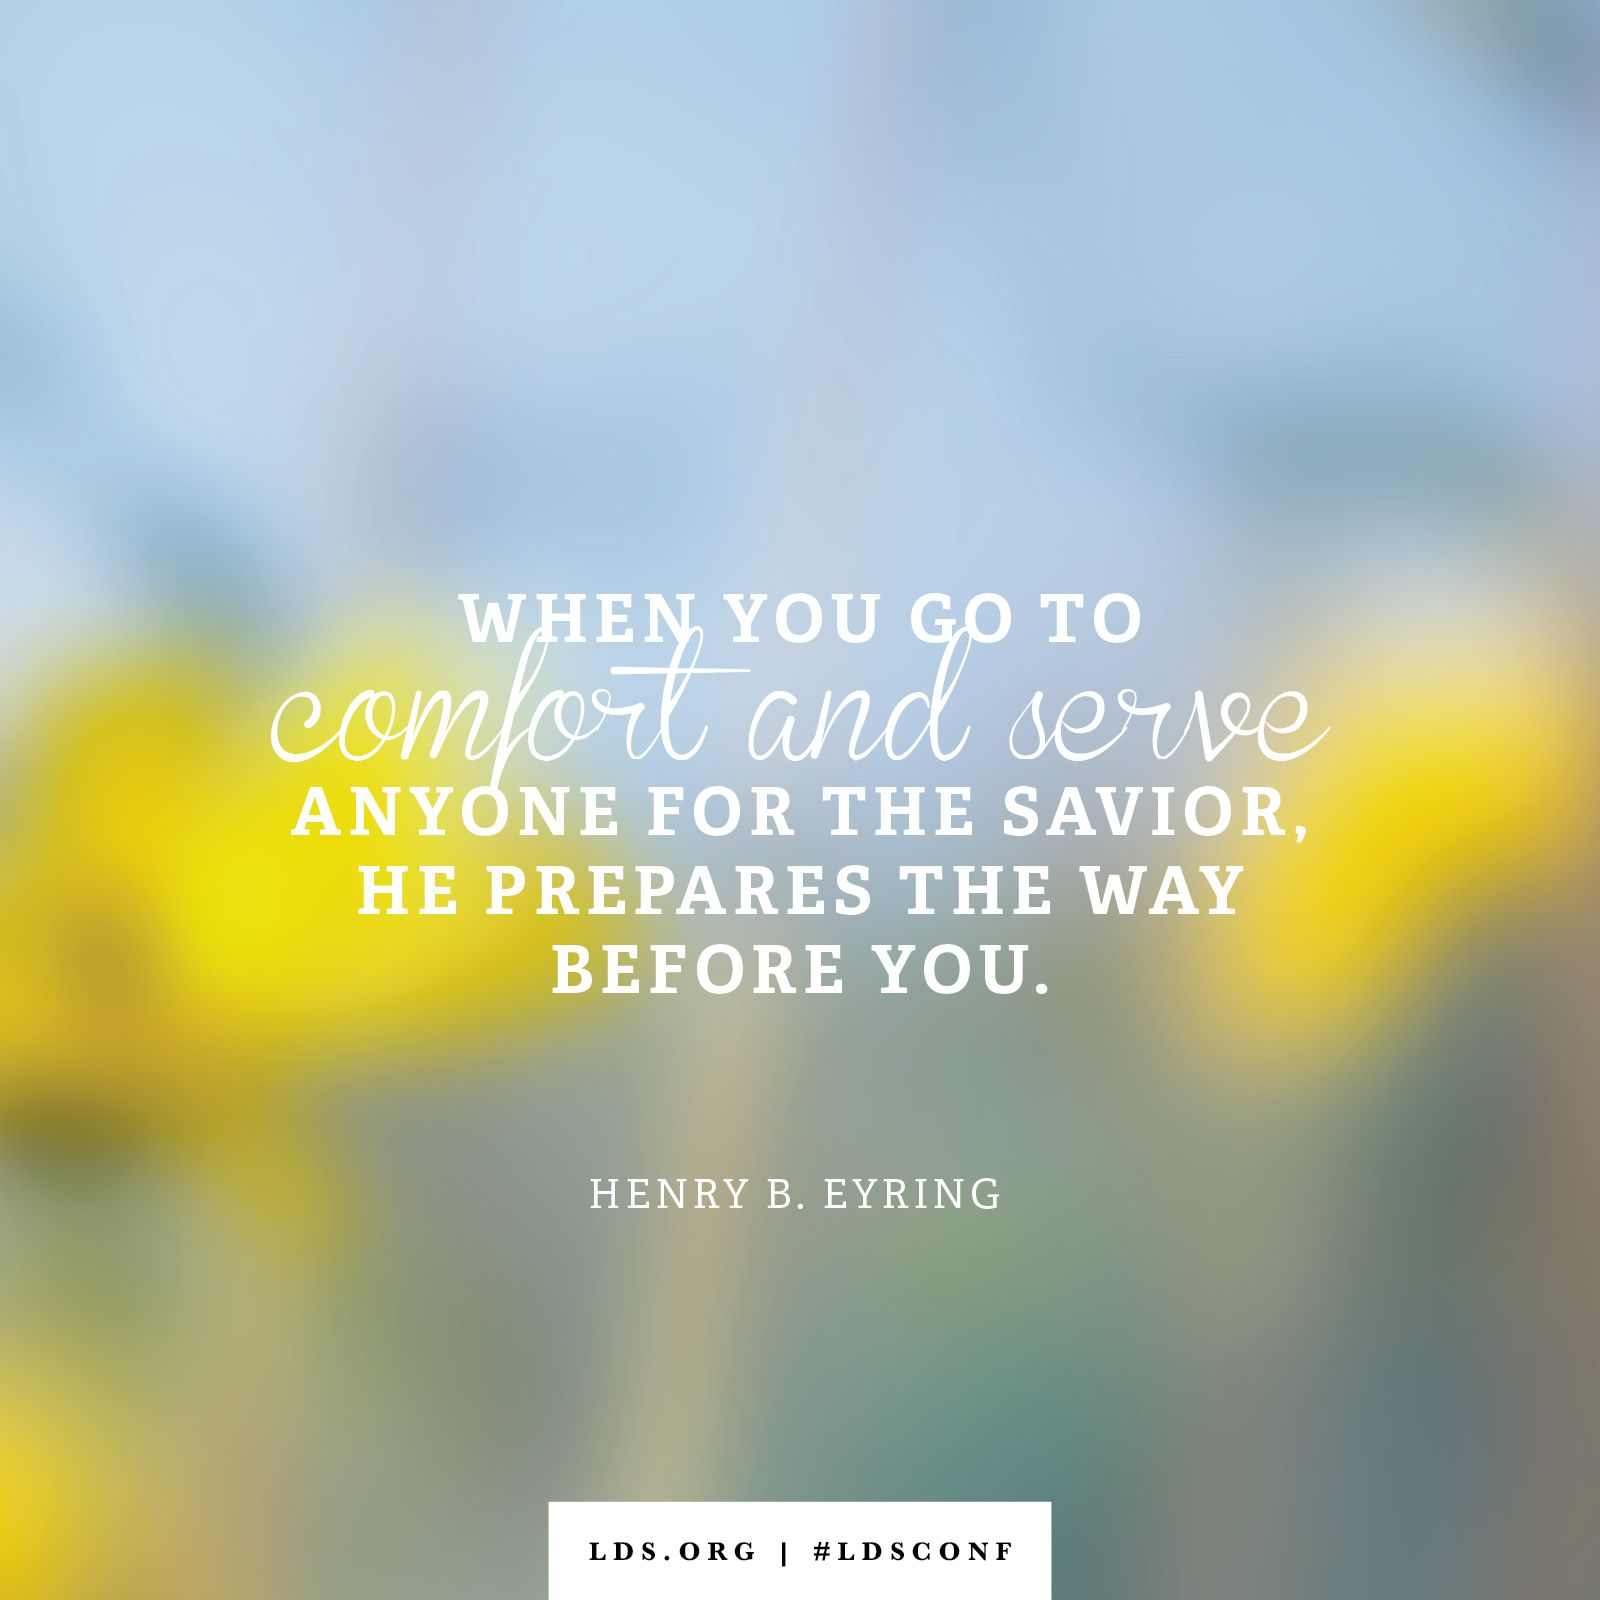 When You Go To Comfort And Serve Anyone For The Savior, He